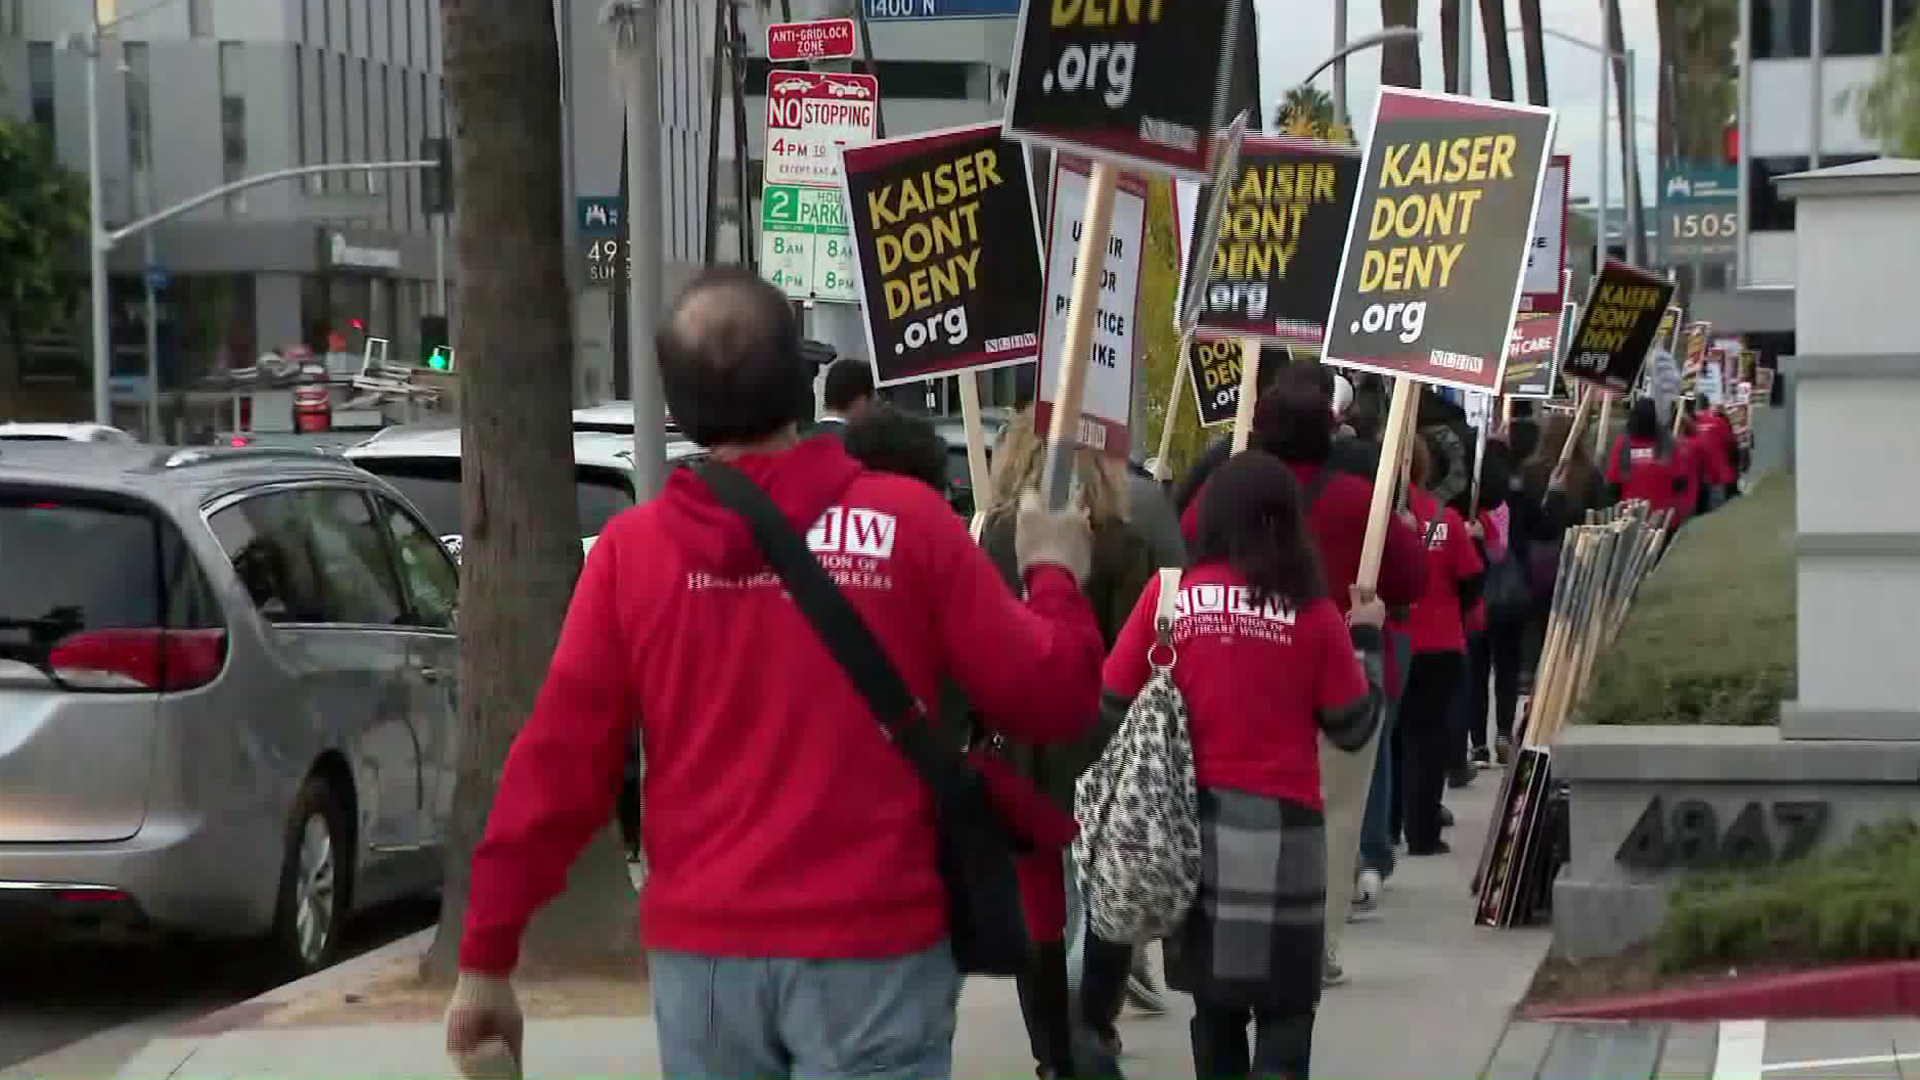 Kaiser Permanente mental health professionals strike in Los Angeles on Dec. 10, 2018. (Credit: KTLA)